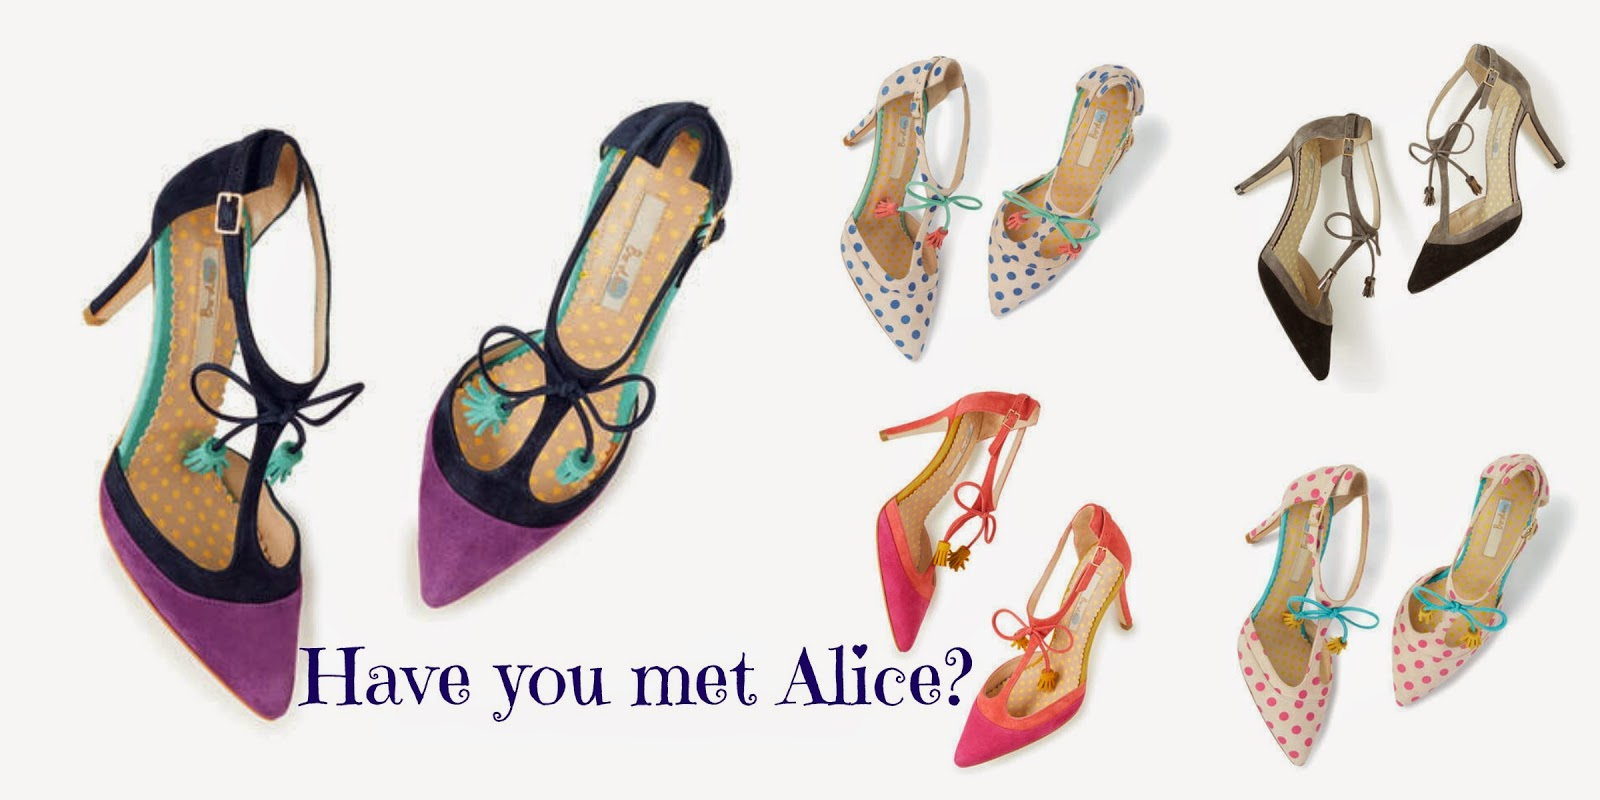 mamasVIB | V. I. BABYMAMAS: Have you met your new Boden shoe yet? Her Name is Alice… | boden | alice heels | fashion | new shoes | must-have shoes | boden clothing | heels | sexy shoes | bella shoes | flats | heels | spring summer collection | press shows | boden jewelled flats | modern mum must have | wit blog | bloggers | fashion blogers | bonita turner | mamasVIB | mama style | womens shoes | new season |S/S 15 | Boden | boden blog | shoe hero | must- have heel | mid heels | t-bar | tassels | press collection |